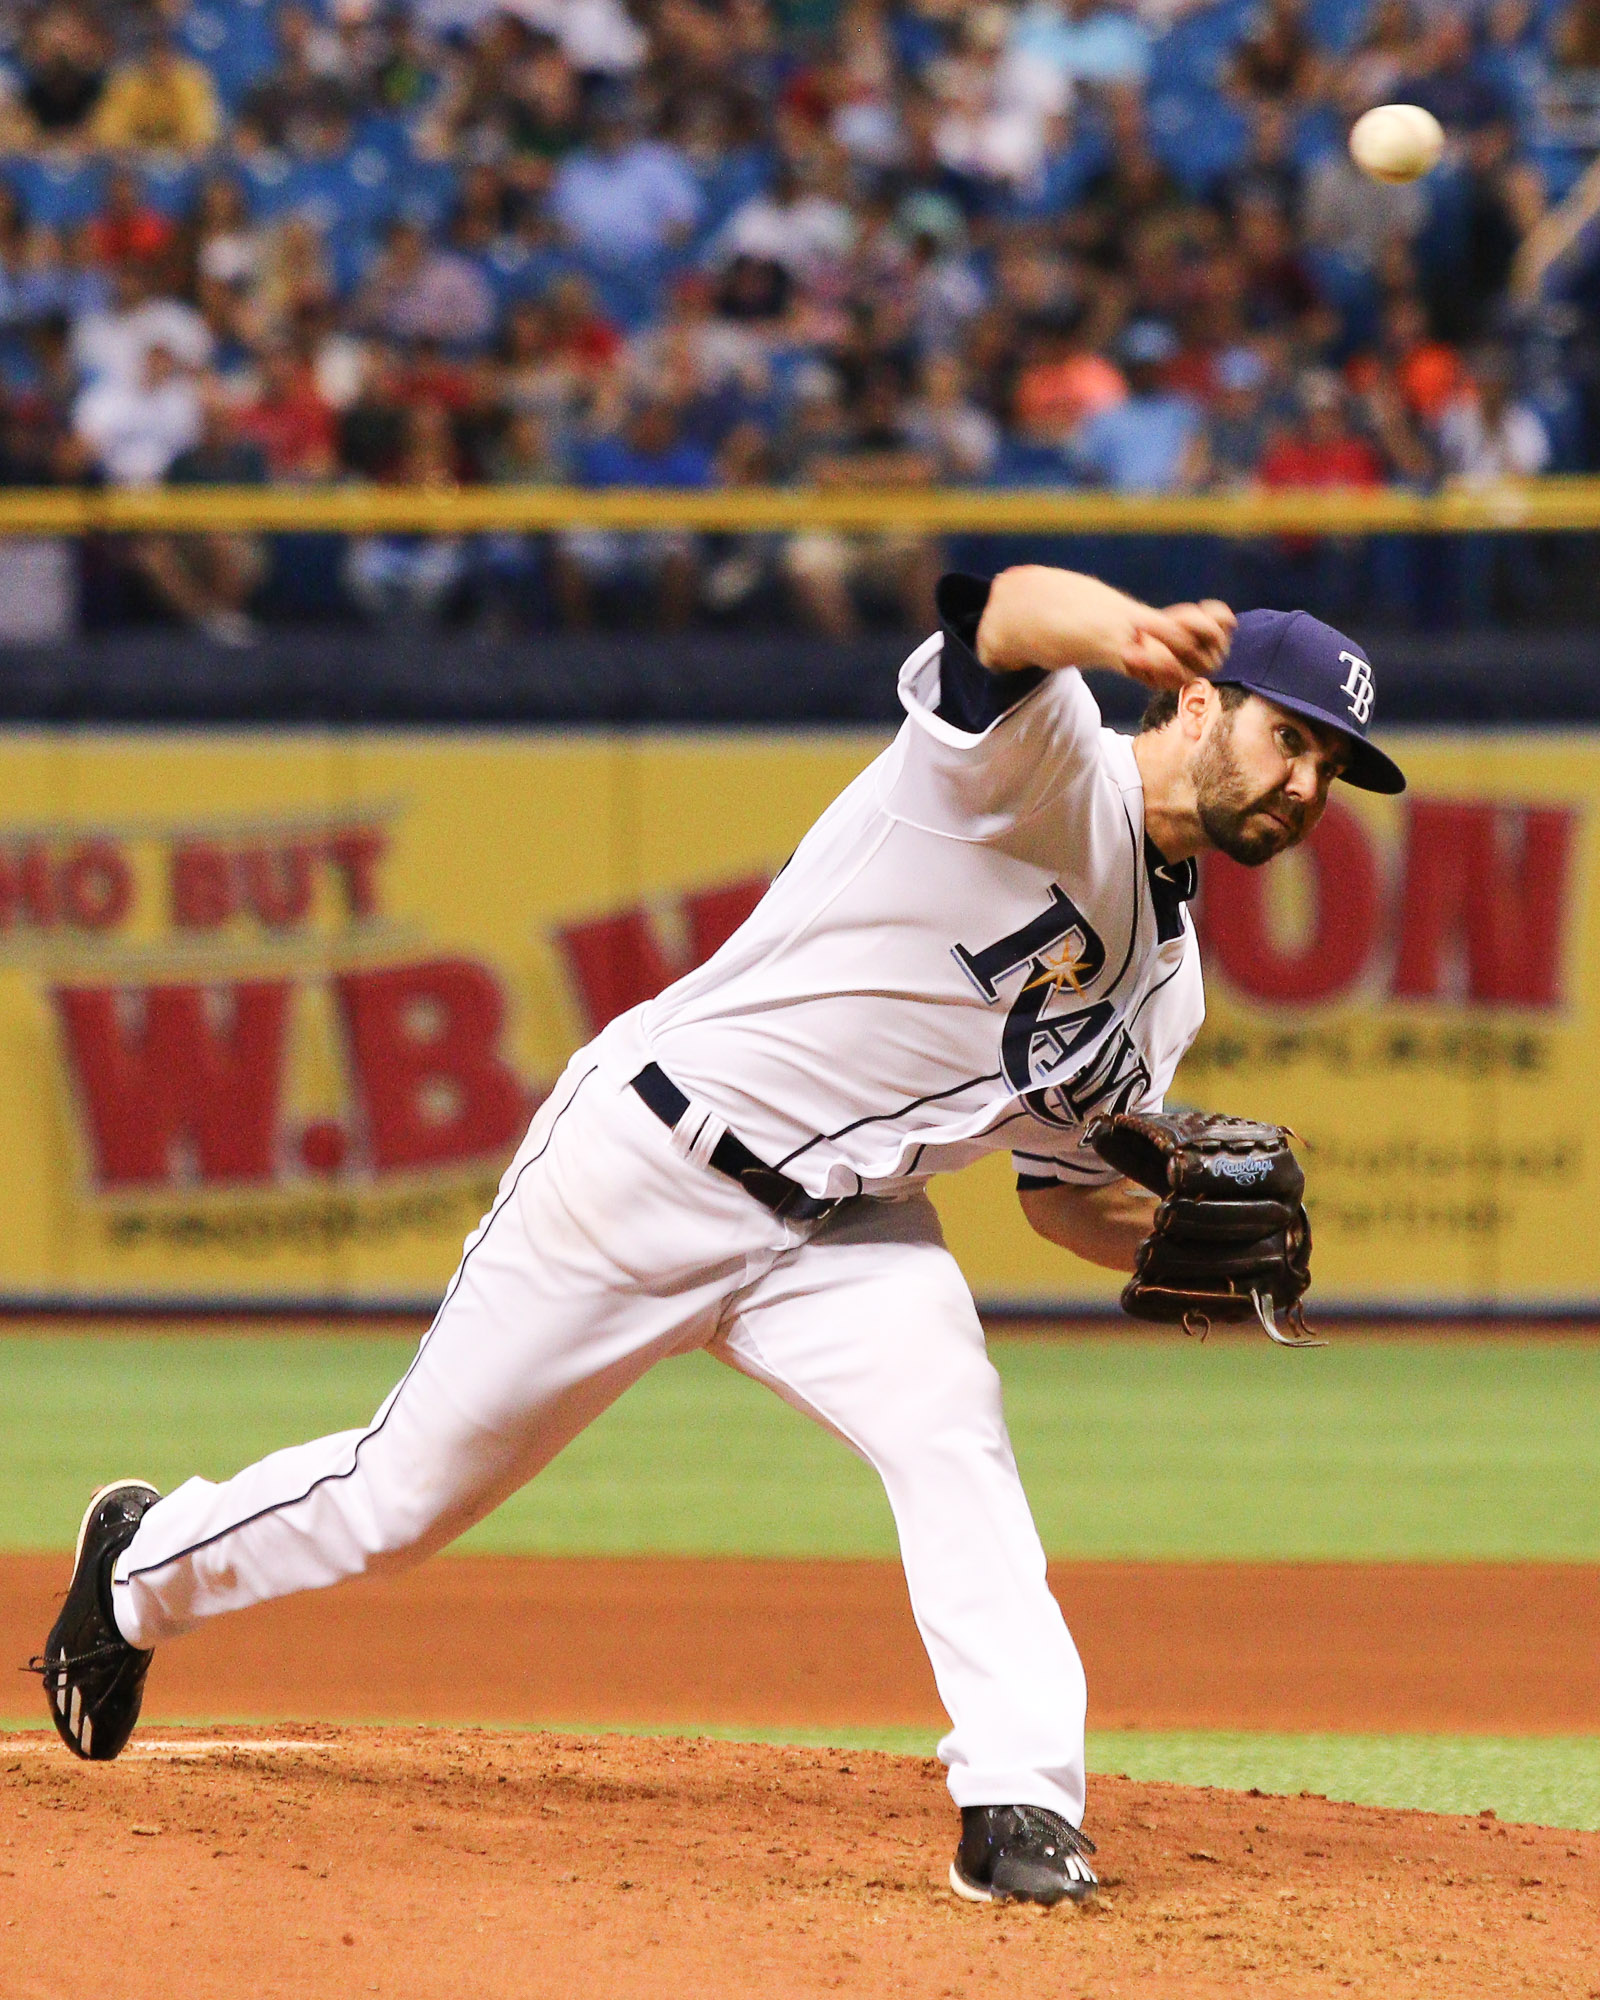 Pruitt gave the Rays' another superb start./ANDREW J. KRAMER